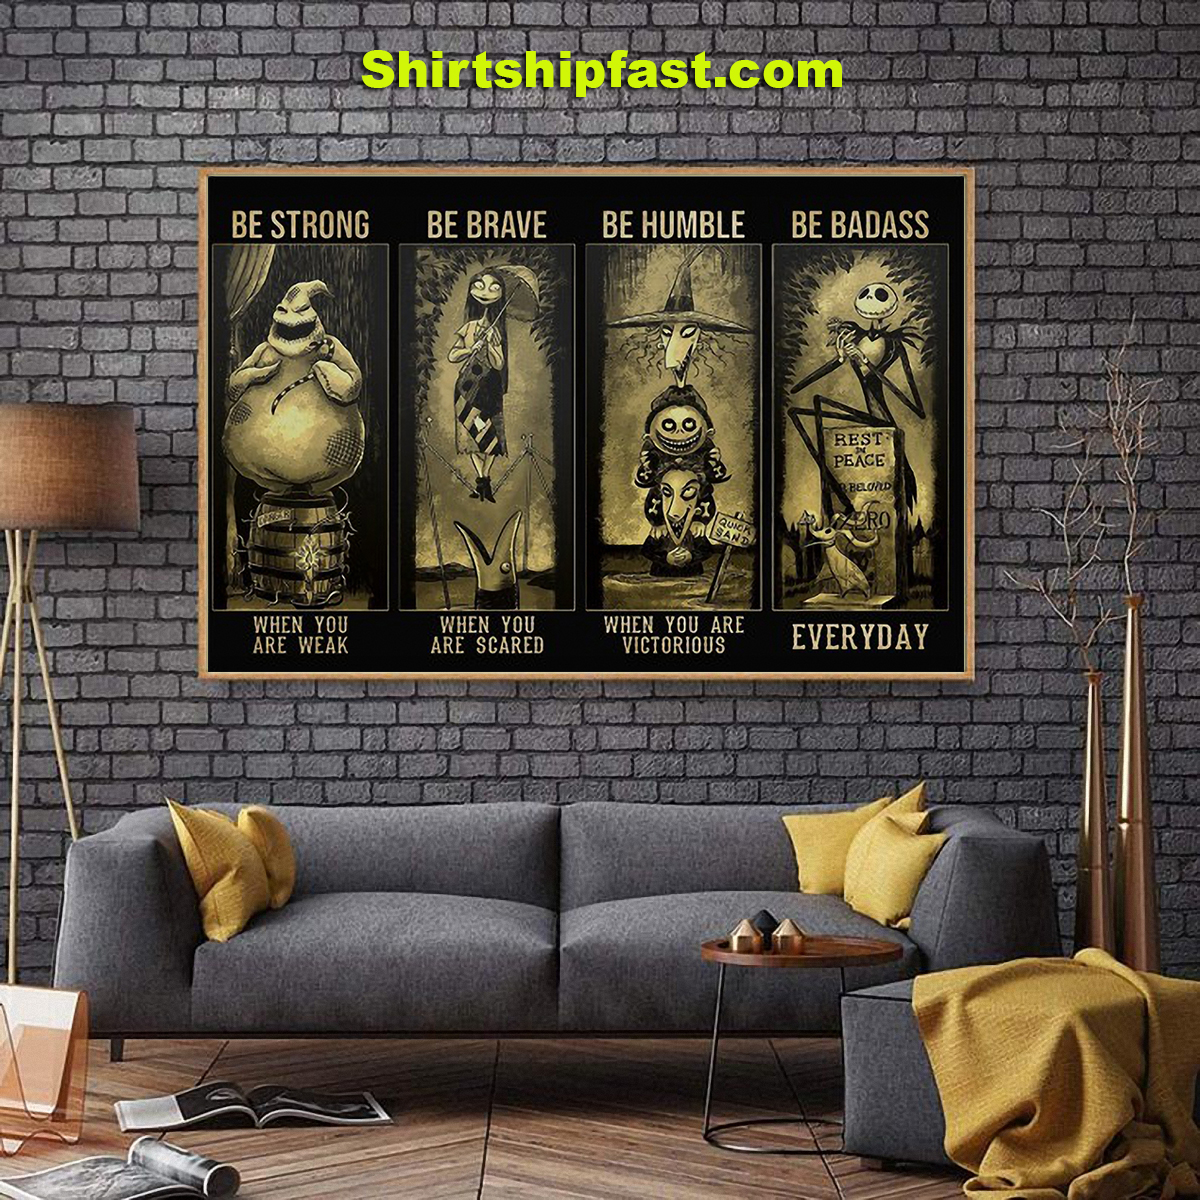 Poster Nightmare before christmas be strong be brave be humble be badass